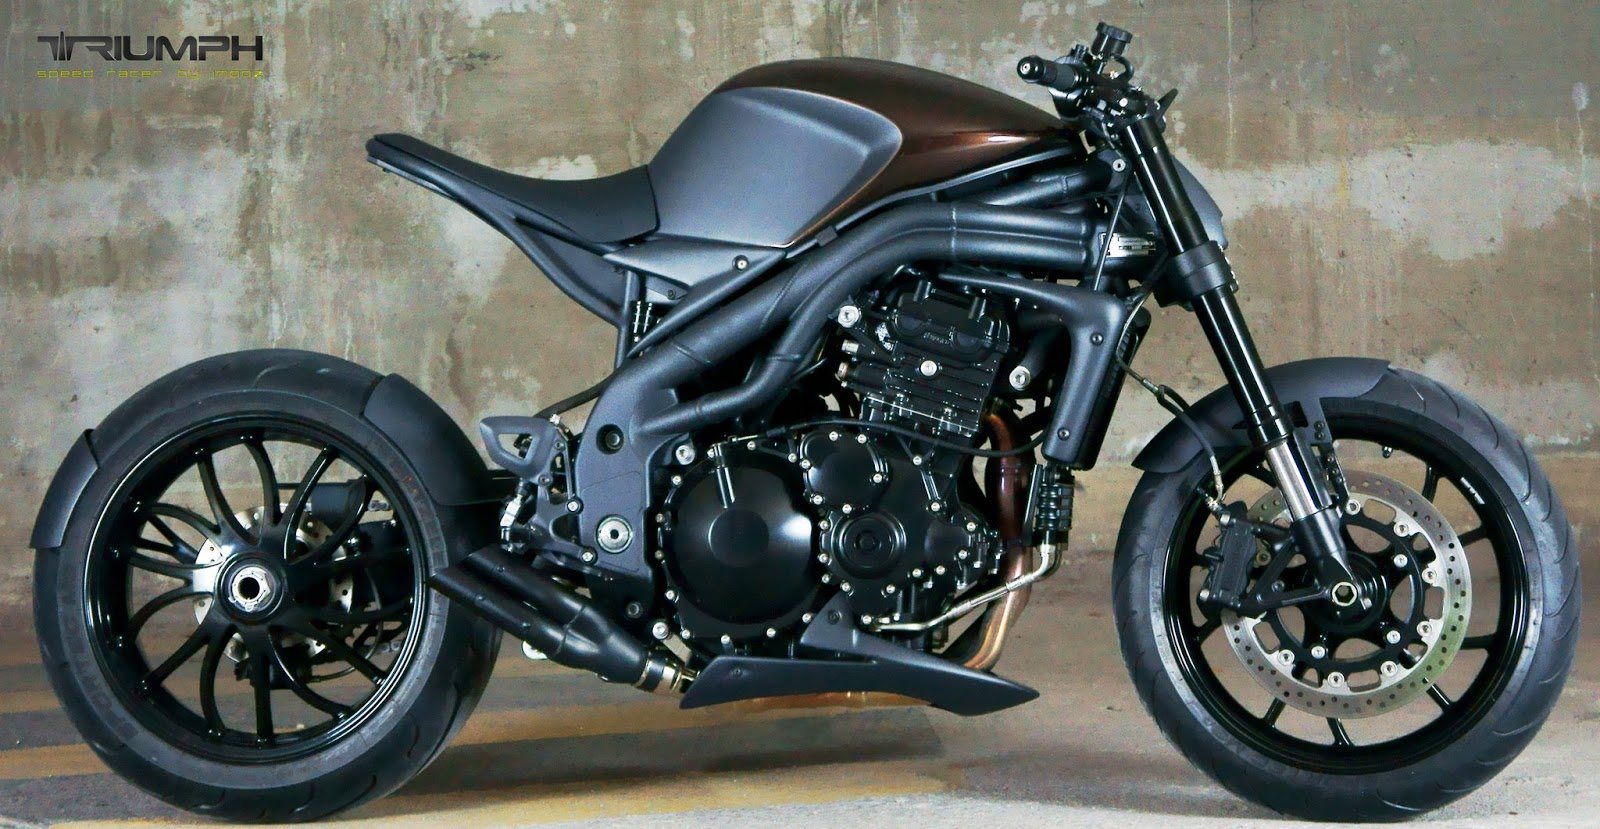 moto mucci daily inspiration triumph 1050 speed triple. Black Bedroom Furniture Sets. Home Design Ideas